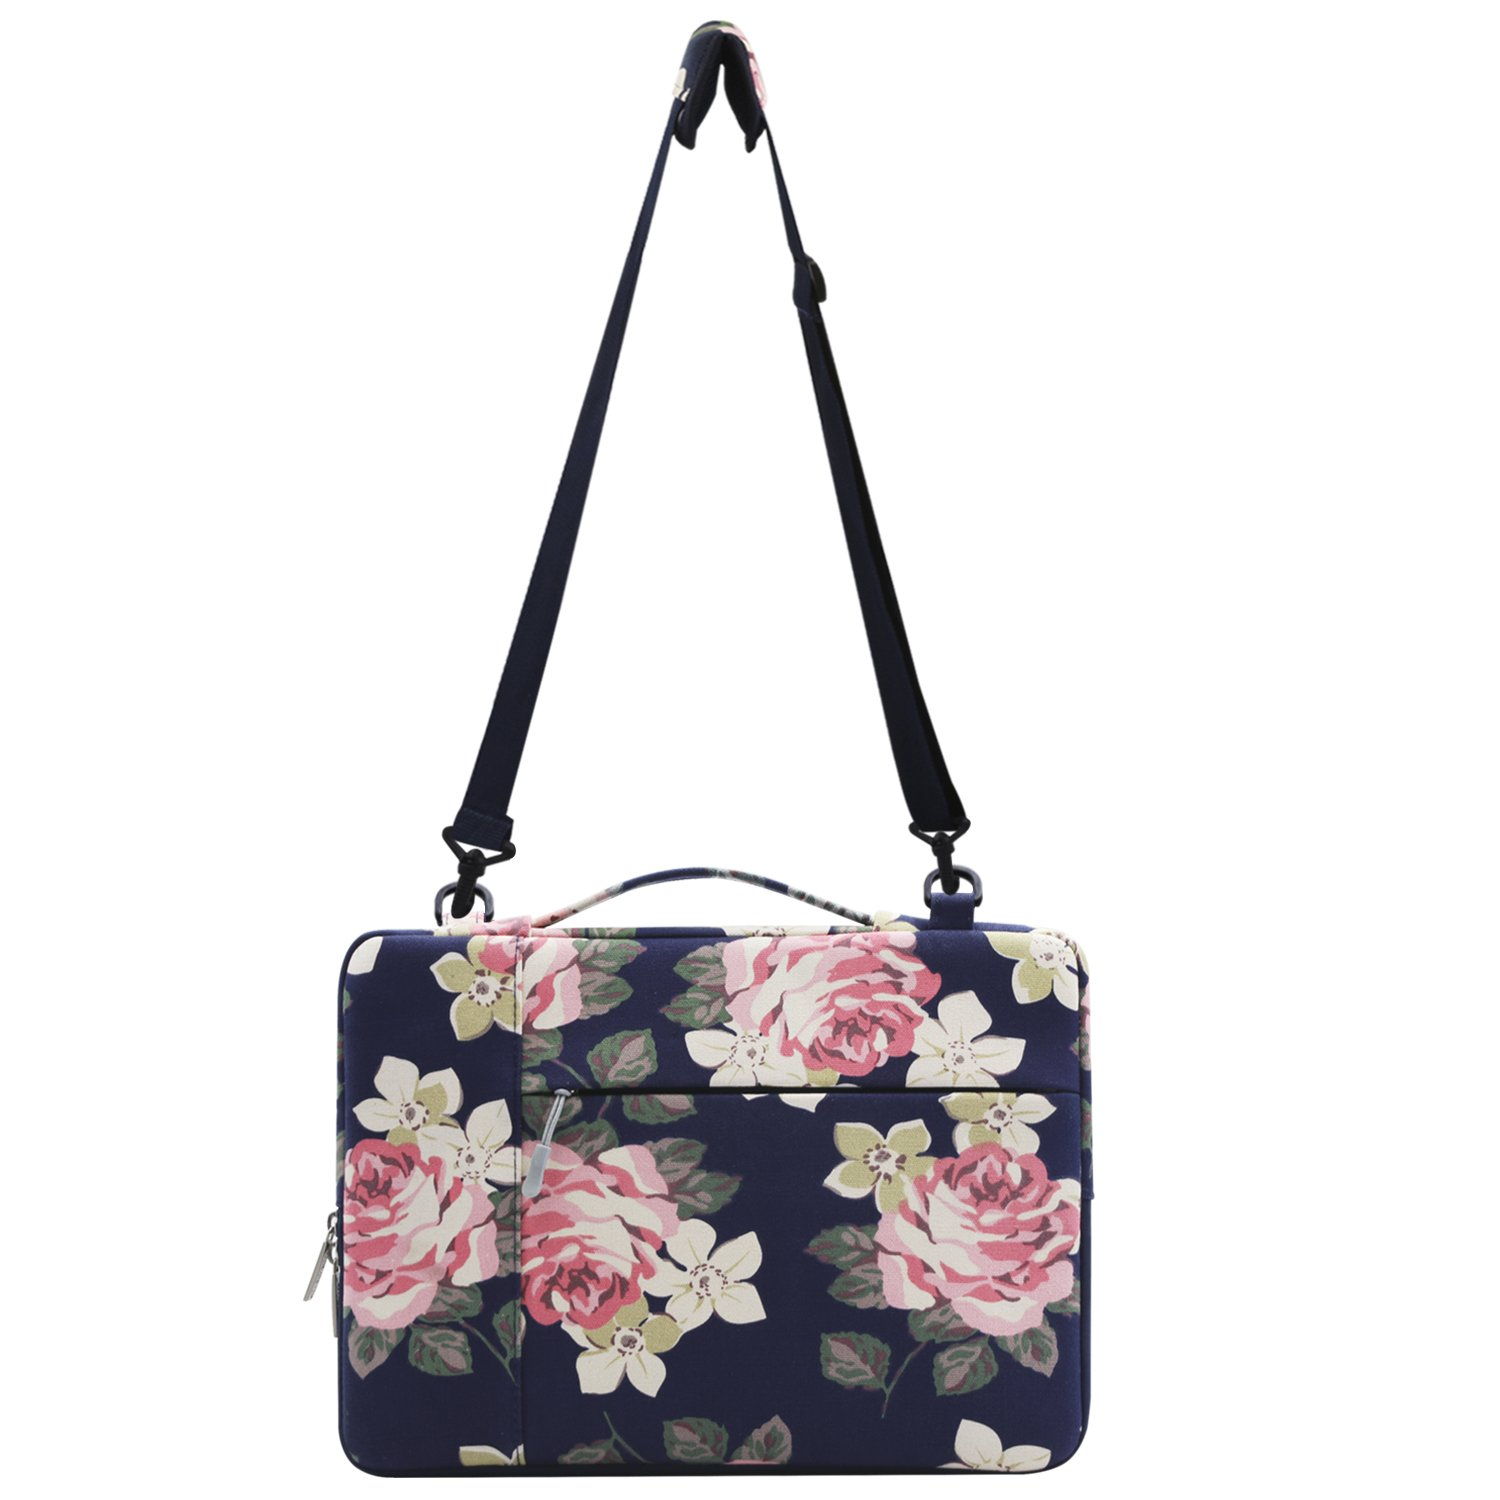 Mosiso Canvas Rose Multifunctional Laptop Shoulder Bag Case Sleeve for 15-15.6 Inch New 2017/2016 MacBook Pro with Touch Bar A1707, MacBook Pro, Notebook, Compatible with 14 Inch Ultrabook, Dark Blue